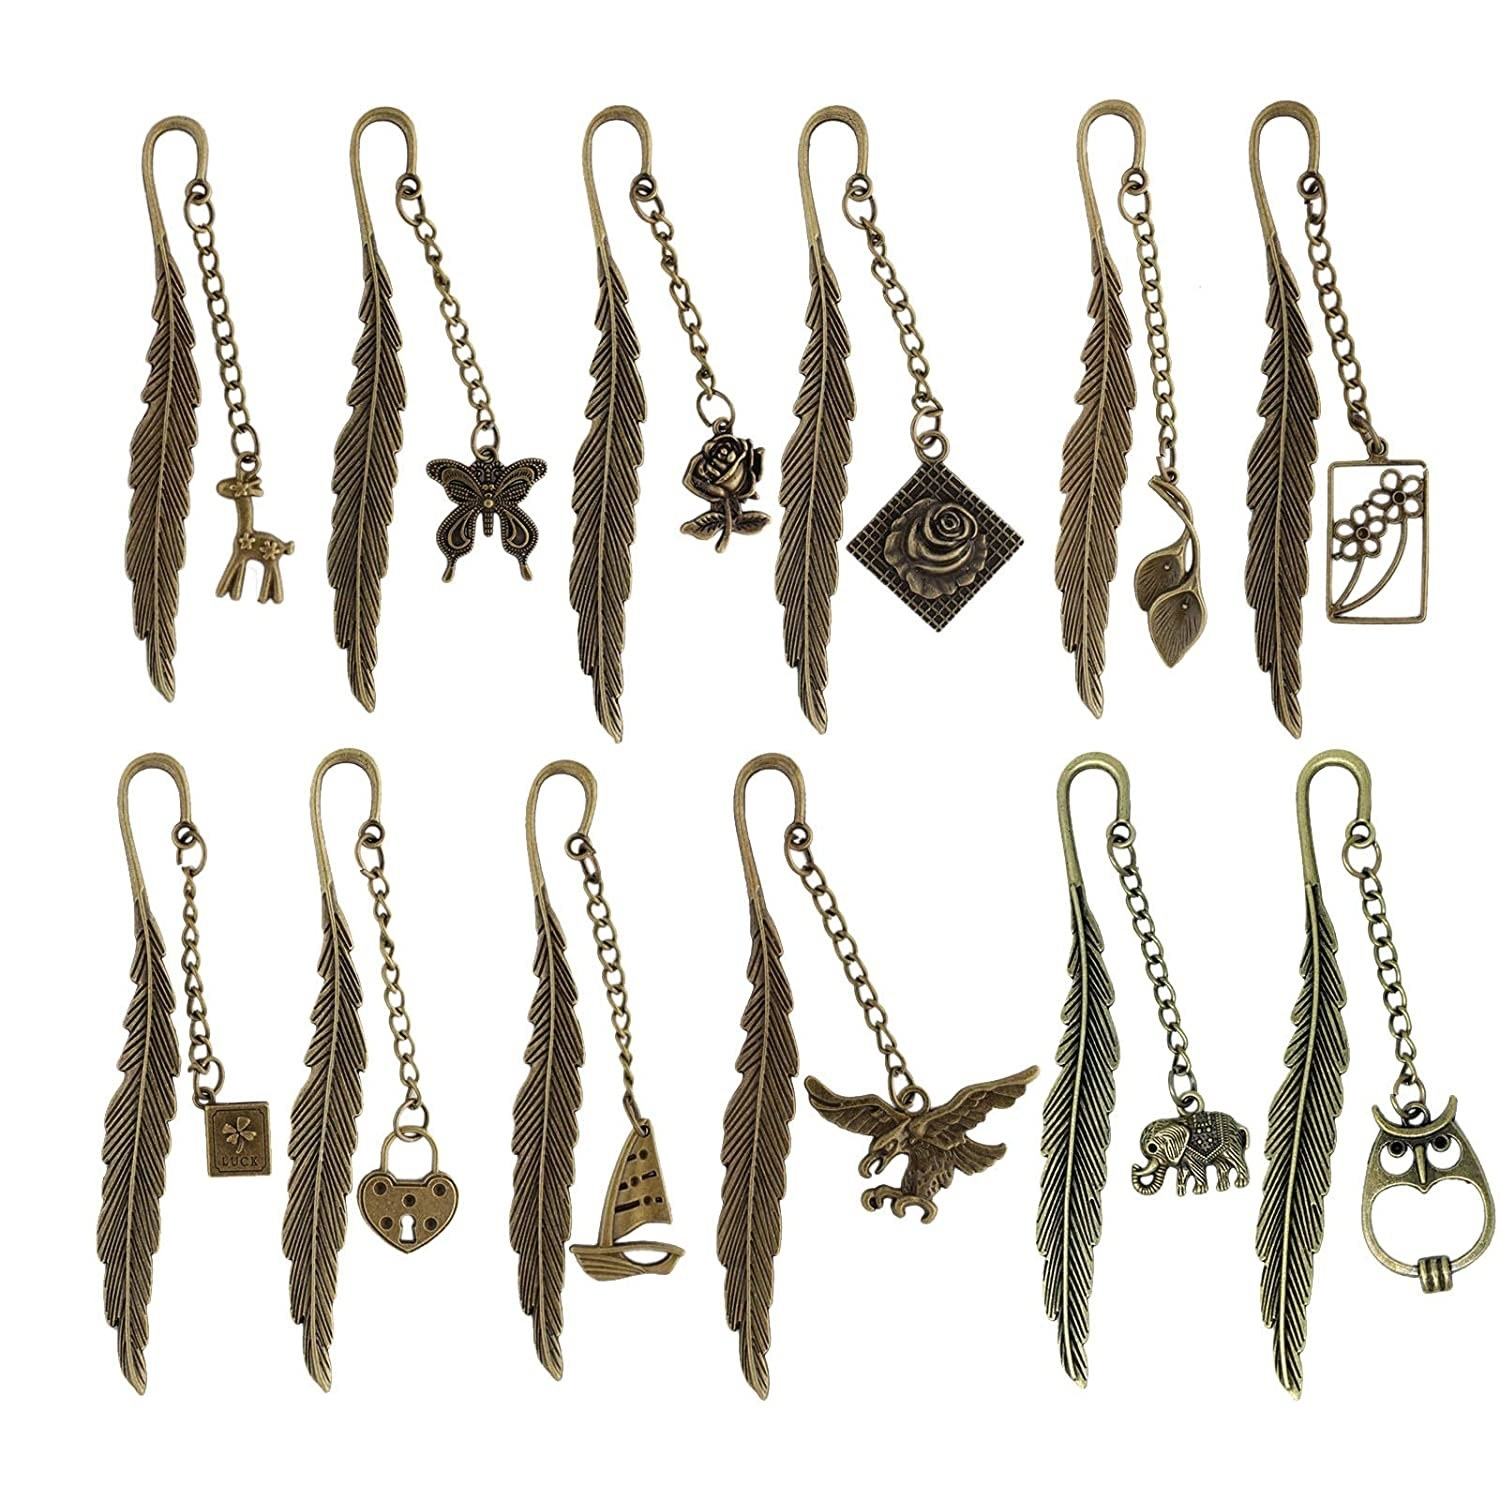 Multiple metal feather bookmarks in different designs.